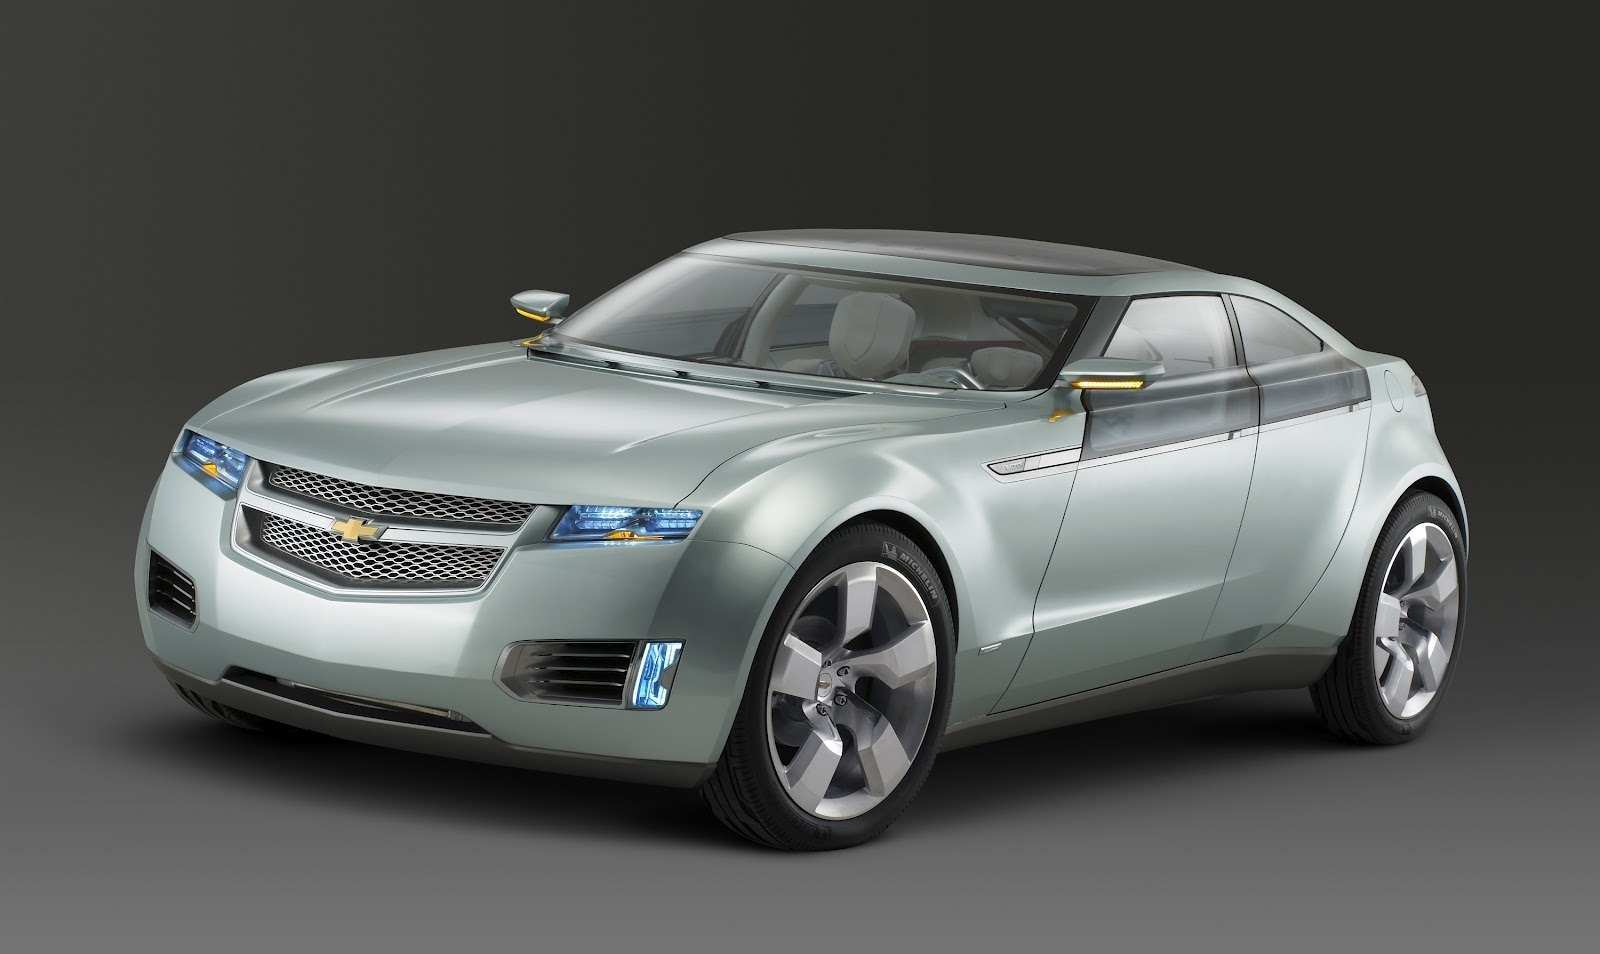 82 Concept of Chevrolet Concept Cars 2020 Redesign and Concept for Chevrolet Concept Cars 2020